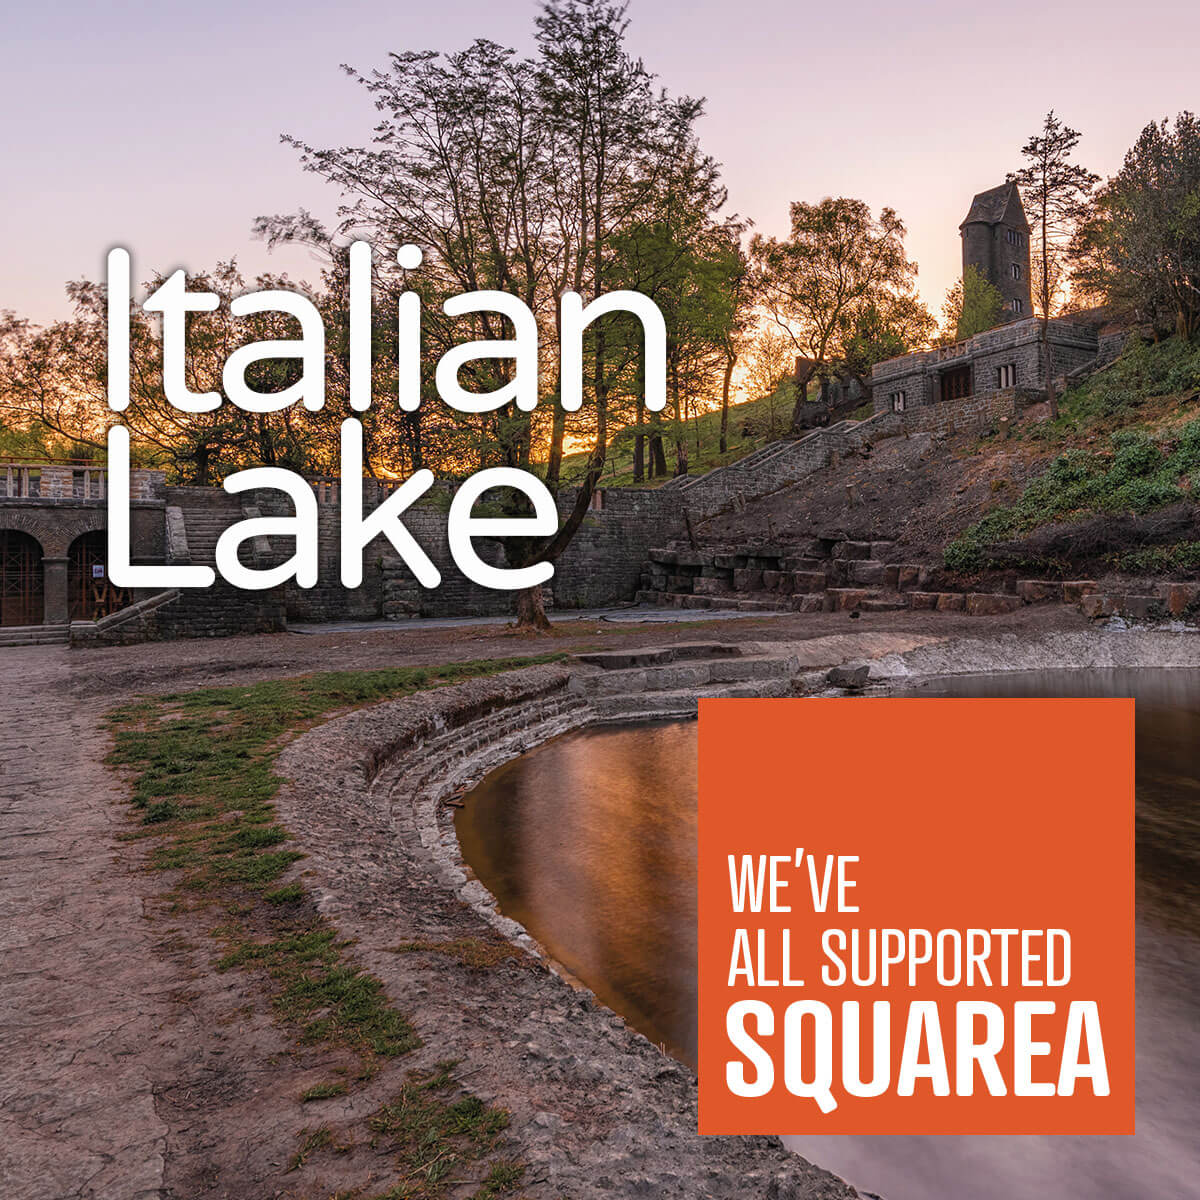 Italian Lake - We've all supported Squarea